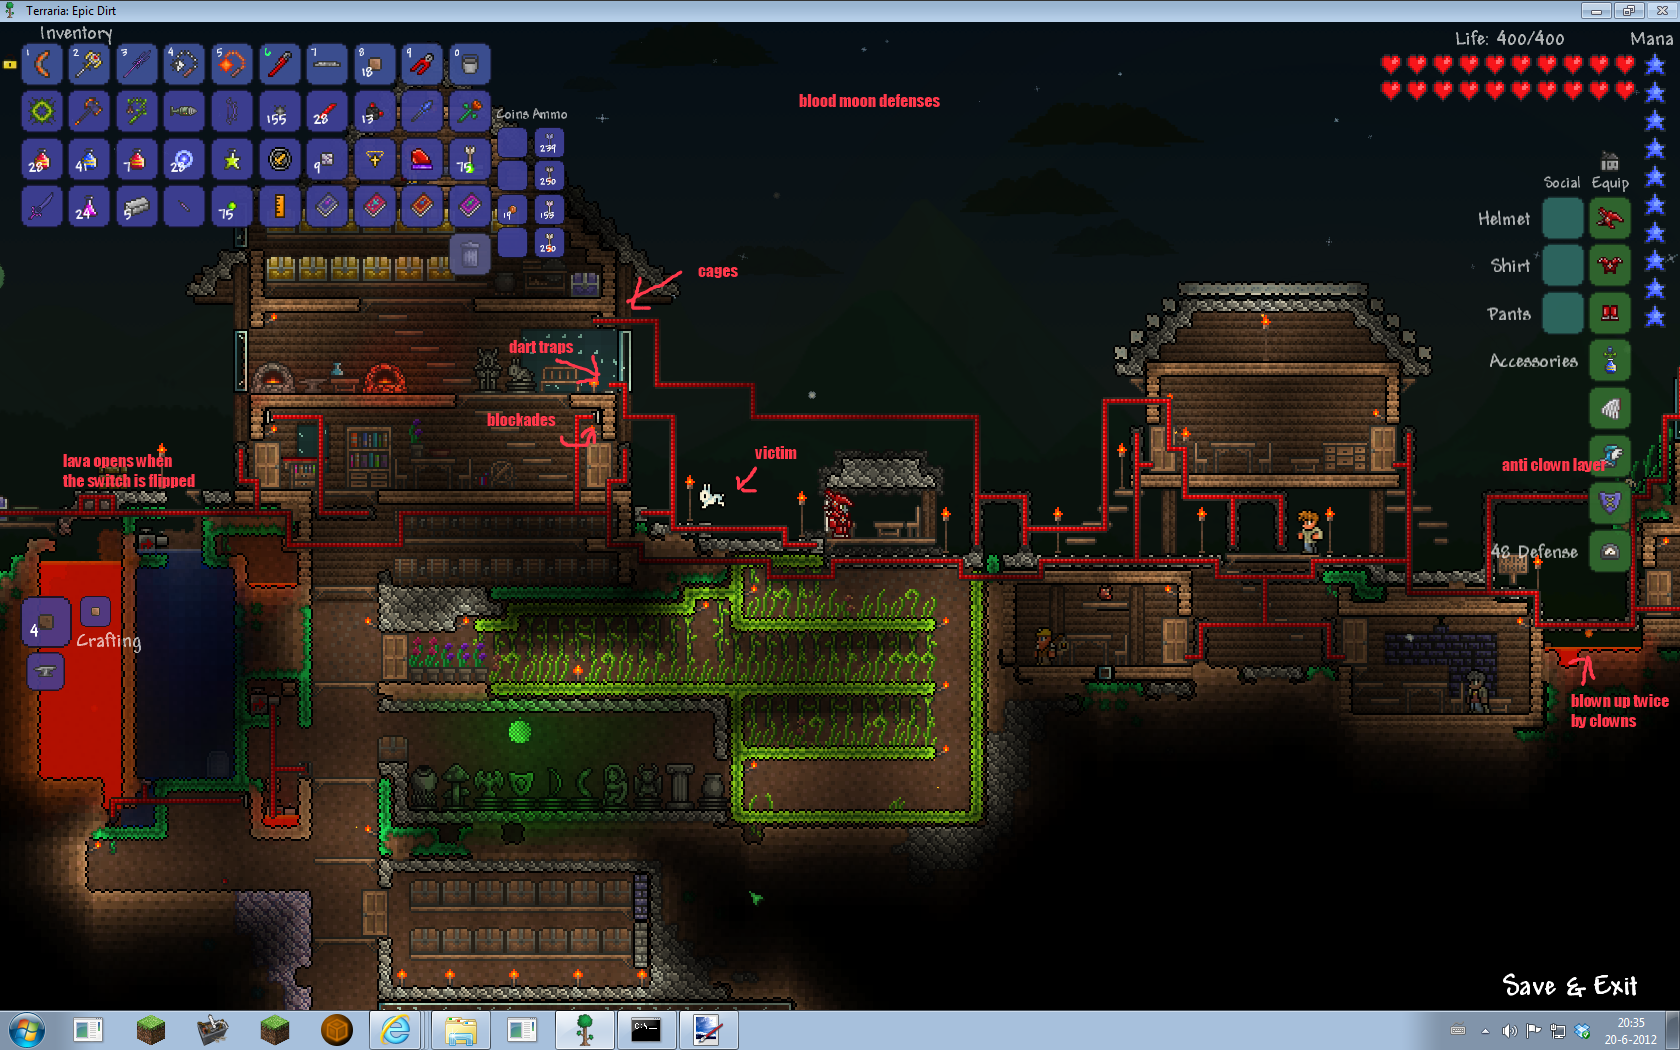 Starbound Locked Doorsteam Community Guide Basics Of Wiring Steam An Erchius Mining Facility Starbounder Wiki You May Find Yourself Waiting For A Better